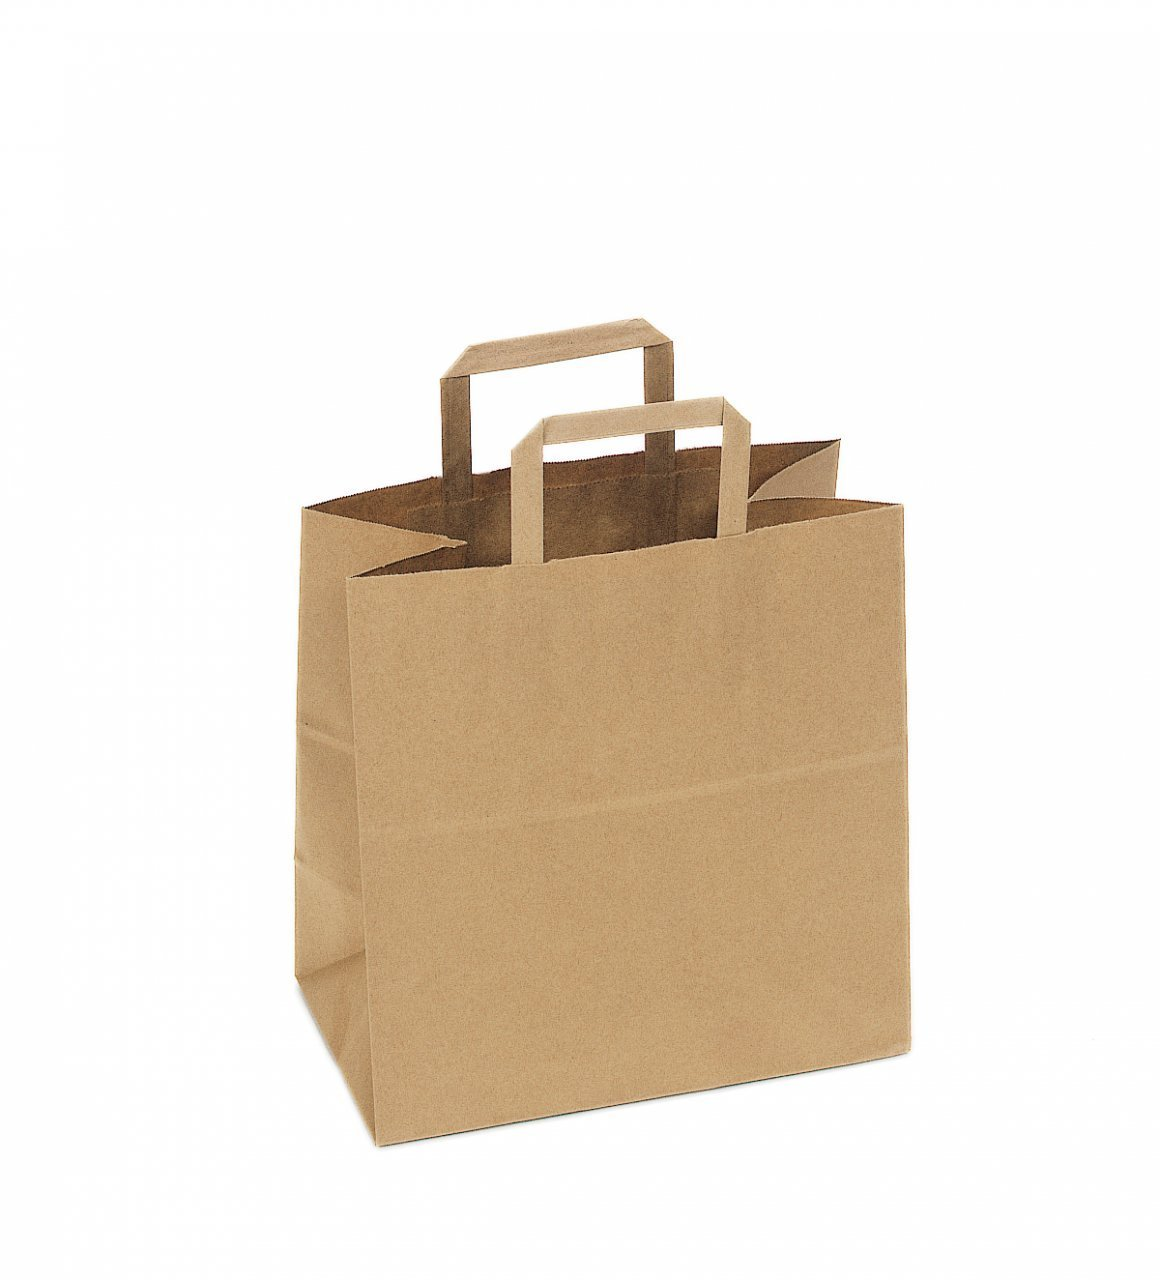 Superb SafePro 12717, 12x7x17 Inch Kraft Paper Shopping Bags With Handles,  Disposable Take Out